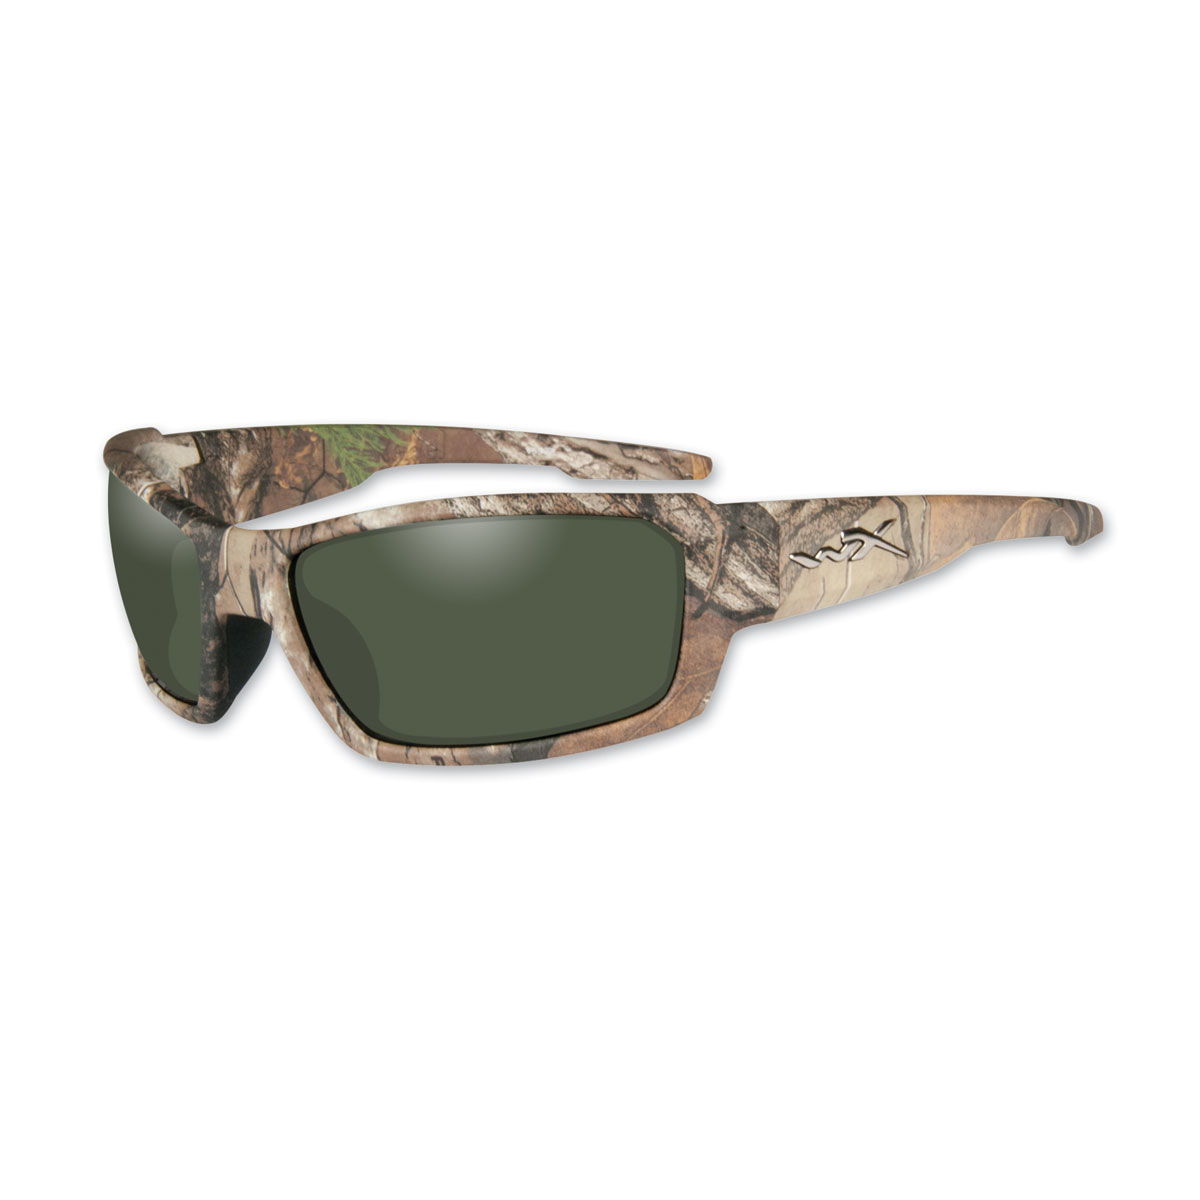 Wiley X Rebel Realtree XTRA Camo Sunglasses with Polarized Green Lens